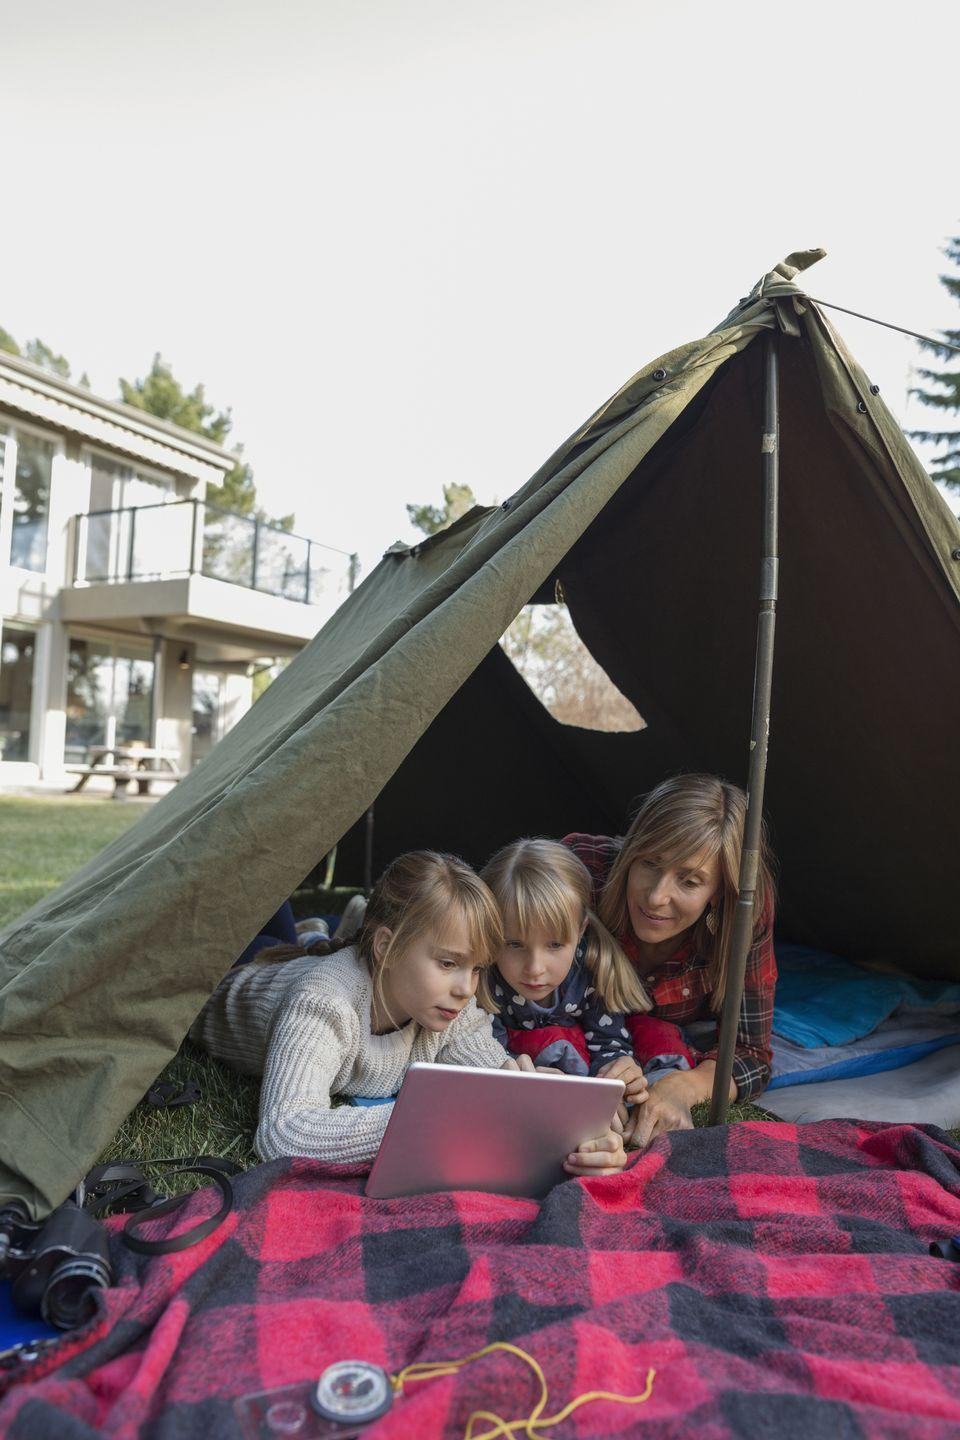 """<p>Can't make it to a real campsite this year? Try a little <a href=""""https://www.countryliving.com/entertaining/g27274046/backyard-tent-camping/"""" rel=""""nofollow noopener"""" target=""""_blank"""" data-ylk=""""slk:backyard tent camping"""" class=""""link rapid-noclick-resp"""">backyard tent camping</a> instead. Once your cookout's died down, watch fireworks from the comfort of sleeping bags and cap off the night with some (not <em>super</em> scary) ghost stories before sleeping under the stars. </p><p><a class=""""link rapid-noclick-resp"""" href=""""https://www.amazon.com/Emonia-Waterproof-Backpacking-Traveling-Lightweight/dp/B07BMSWX8M/?tag=syn-yahoo-20&ascsubtag=%5Bartid%7C10050.g.4463%5Bsrc%7Cyahoo-us"""" rel=""""nofollow noopener"""" target=""""_blank"""" data-ylk=""""slk:SHOP SLEEPING BAGS"""">SHOP SLEEPING BAGS</a></p>"""